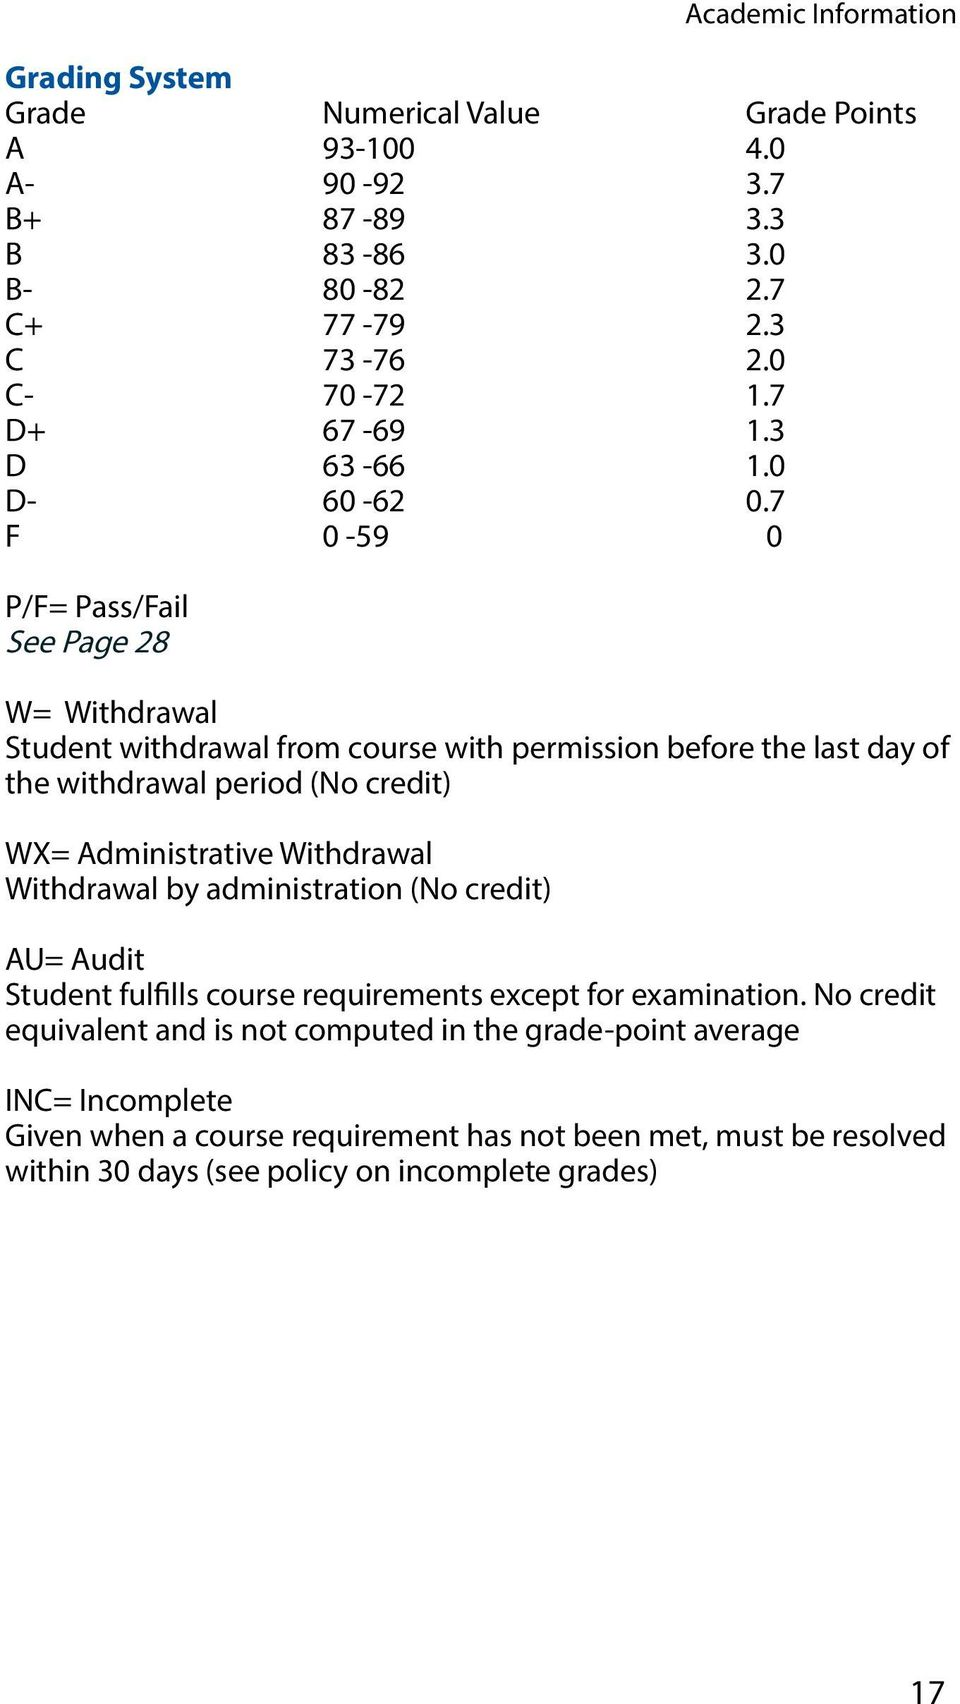 7 F 0-59 0 P/F= Pass/Fail See Page 28 W= Withdrawal Student withdrawal from course with permission before the last day of the withdrawal period (No credit) WX= Administrative